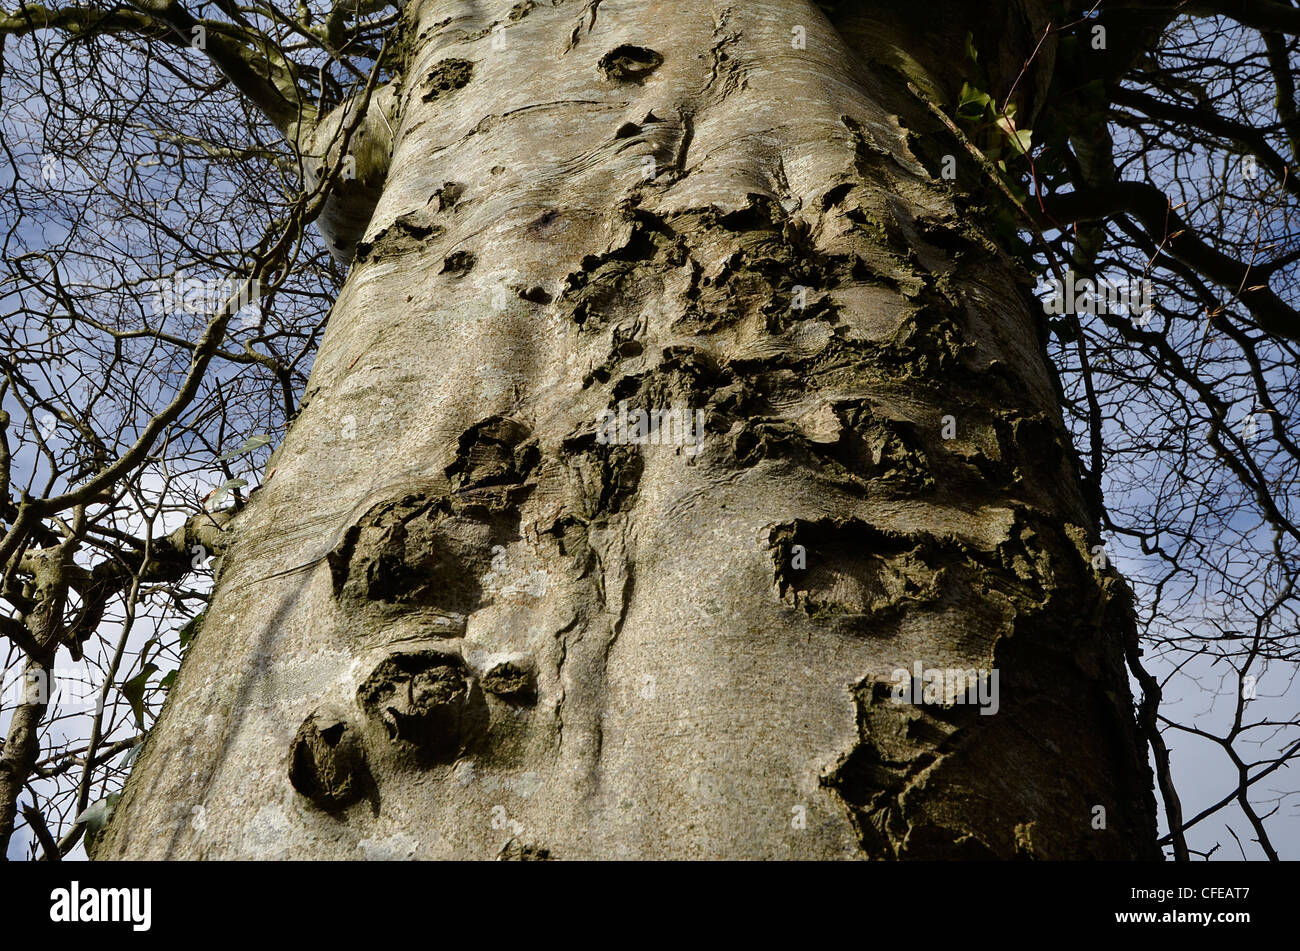 Bark surface of tree trunk during winter-spring period. [FOCUS POINT note in Description.] Bark texture background, - Stock Image